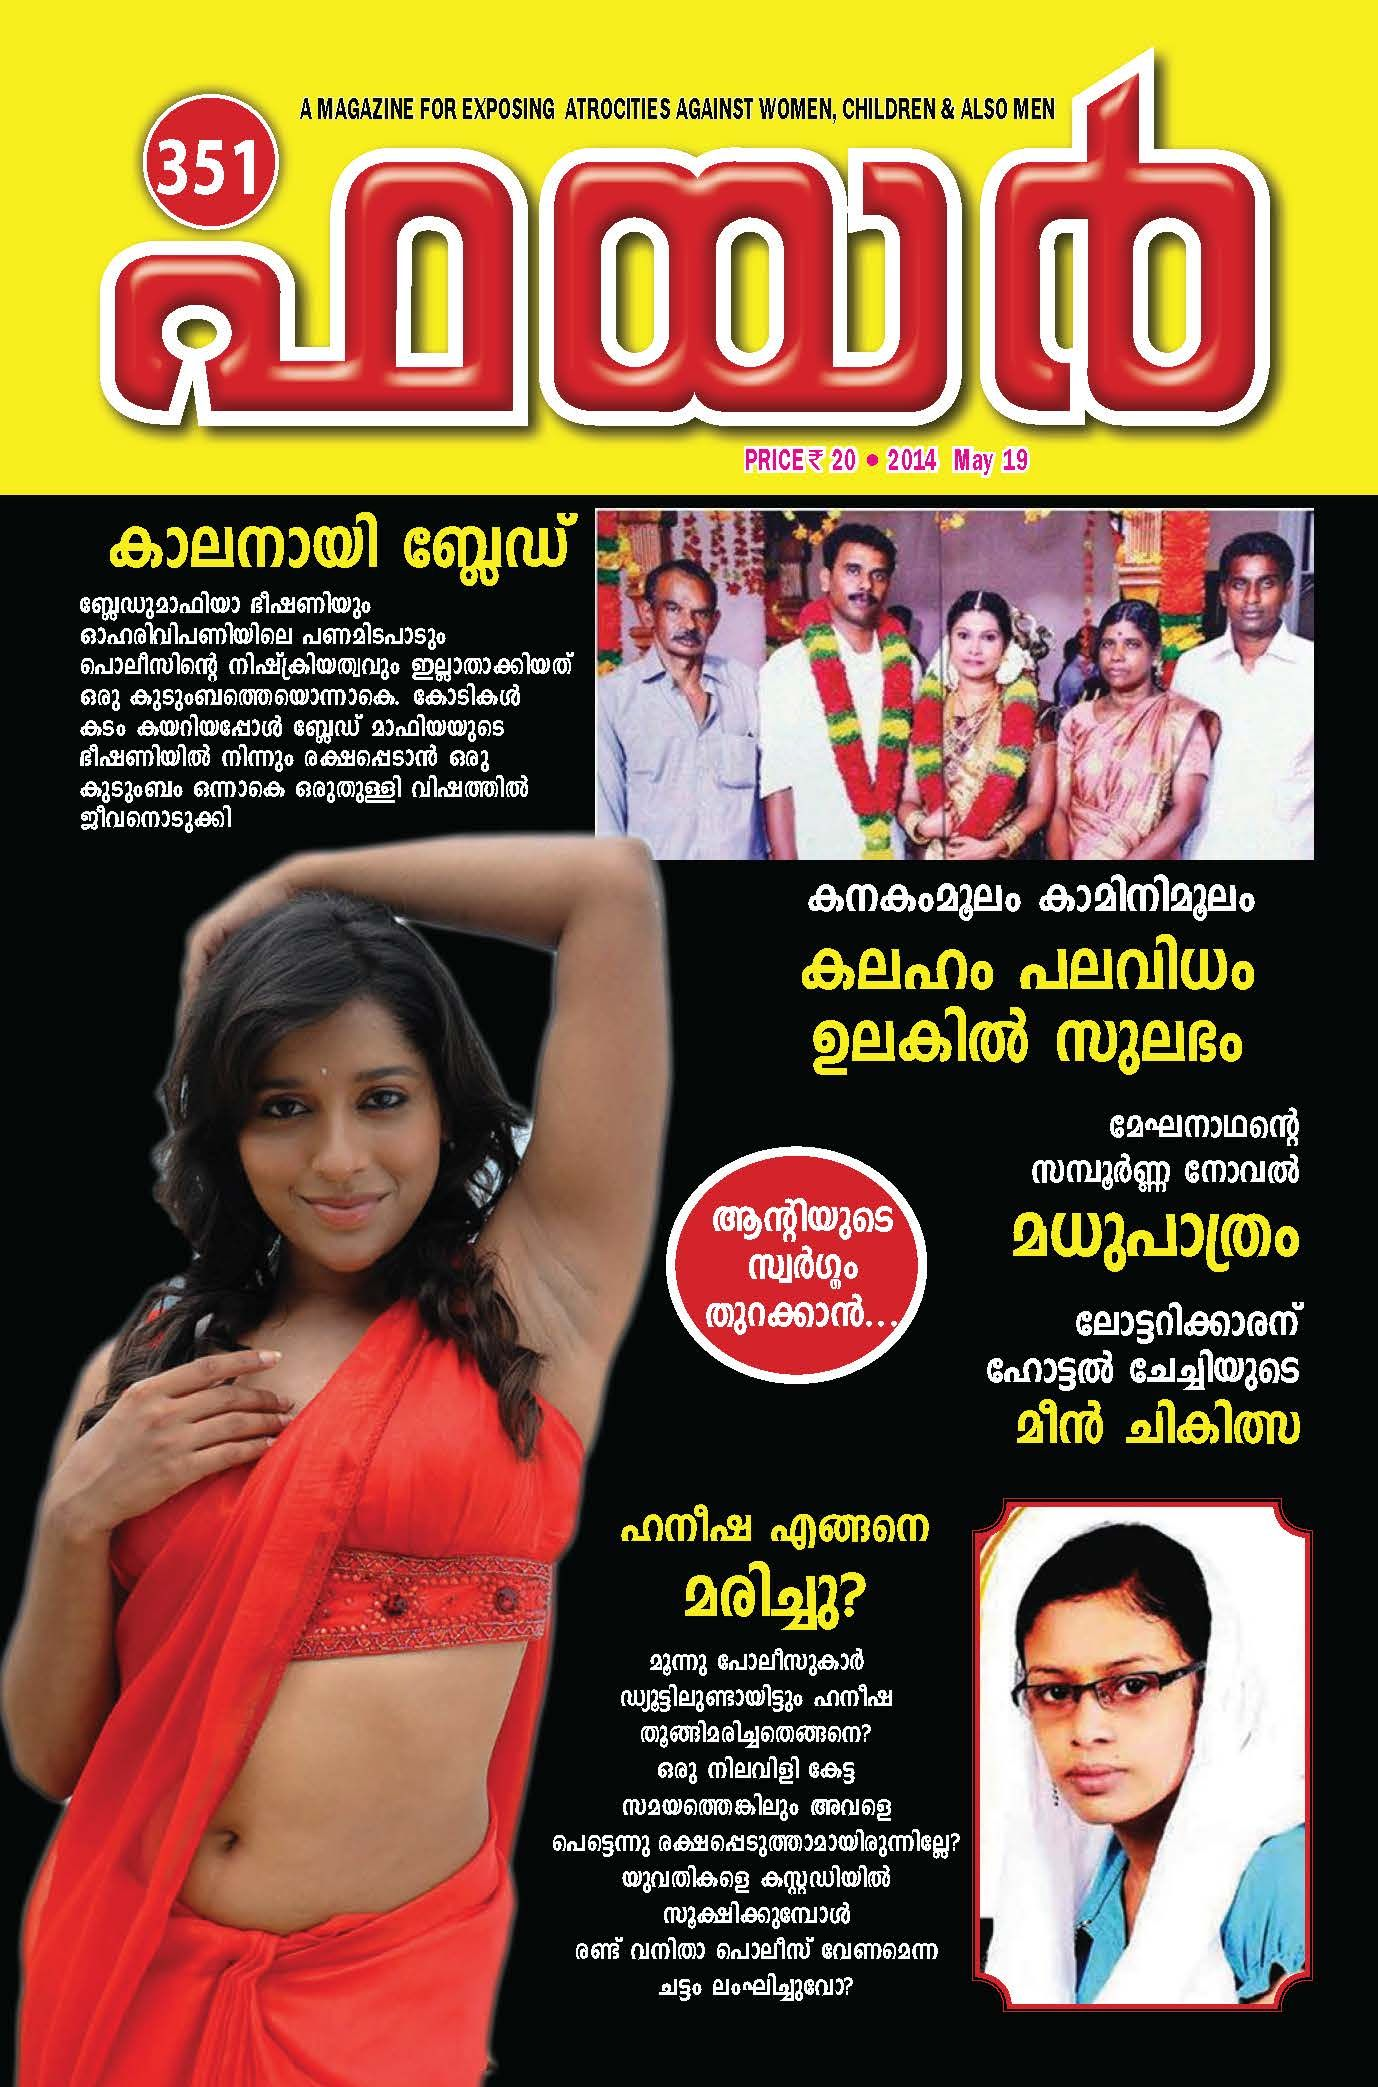 Fire Malayalam Magazine - Buy, Subscribe, Download and Read Fire on